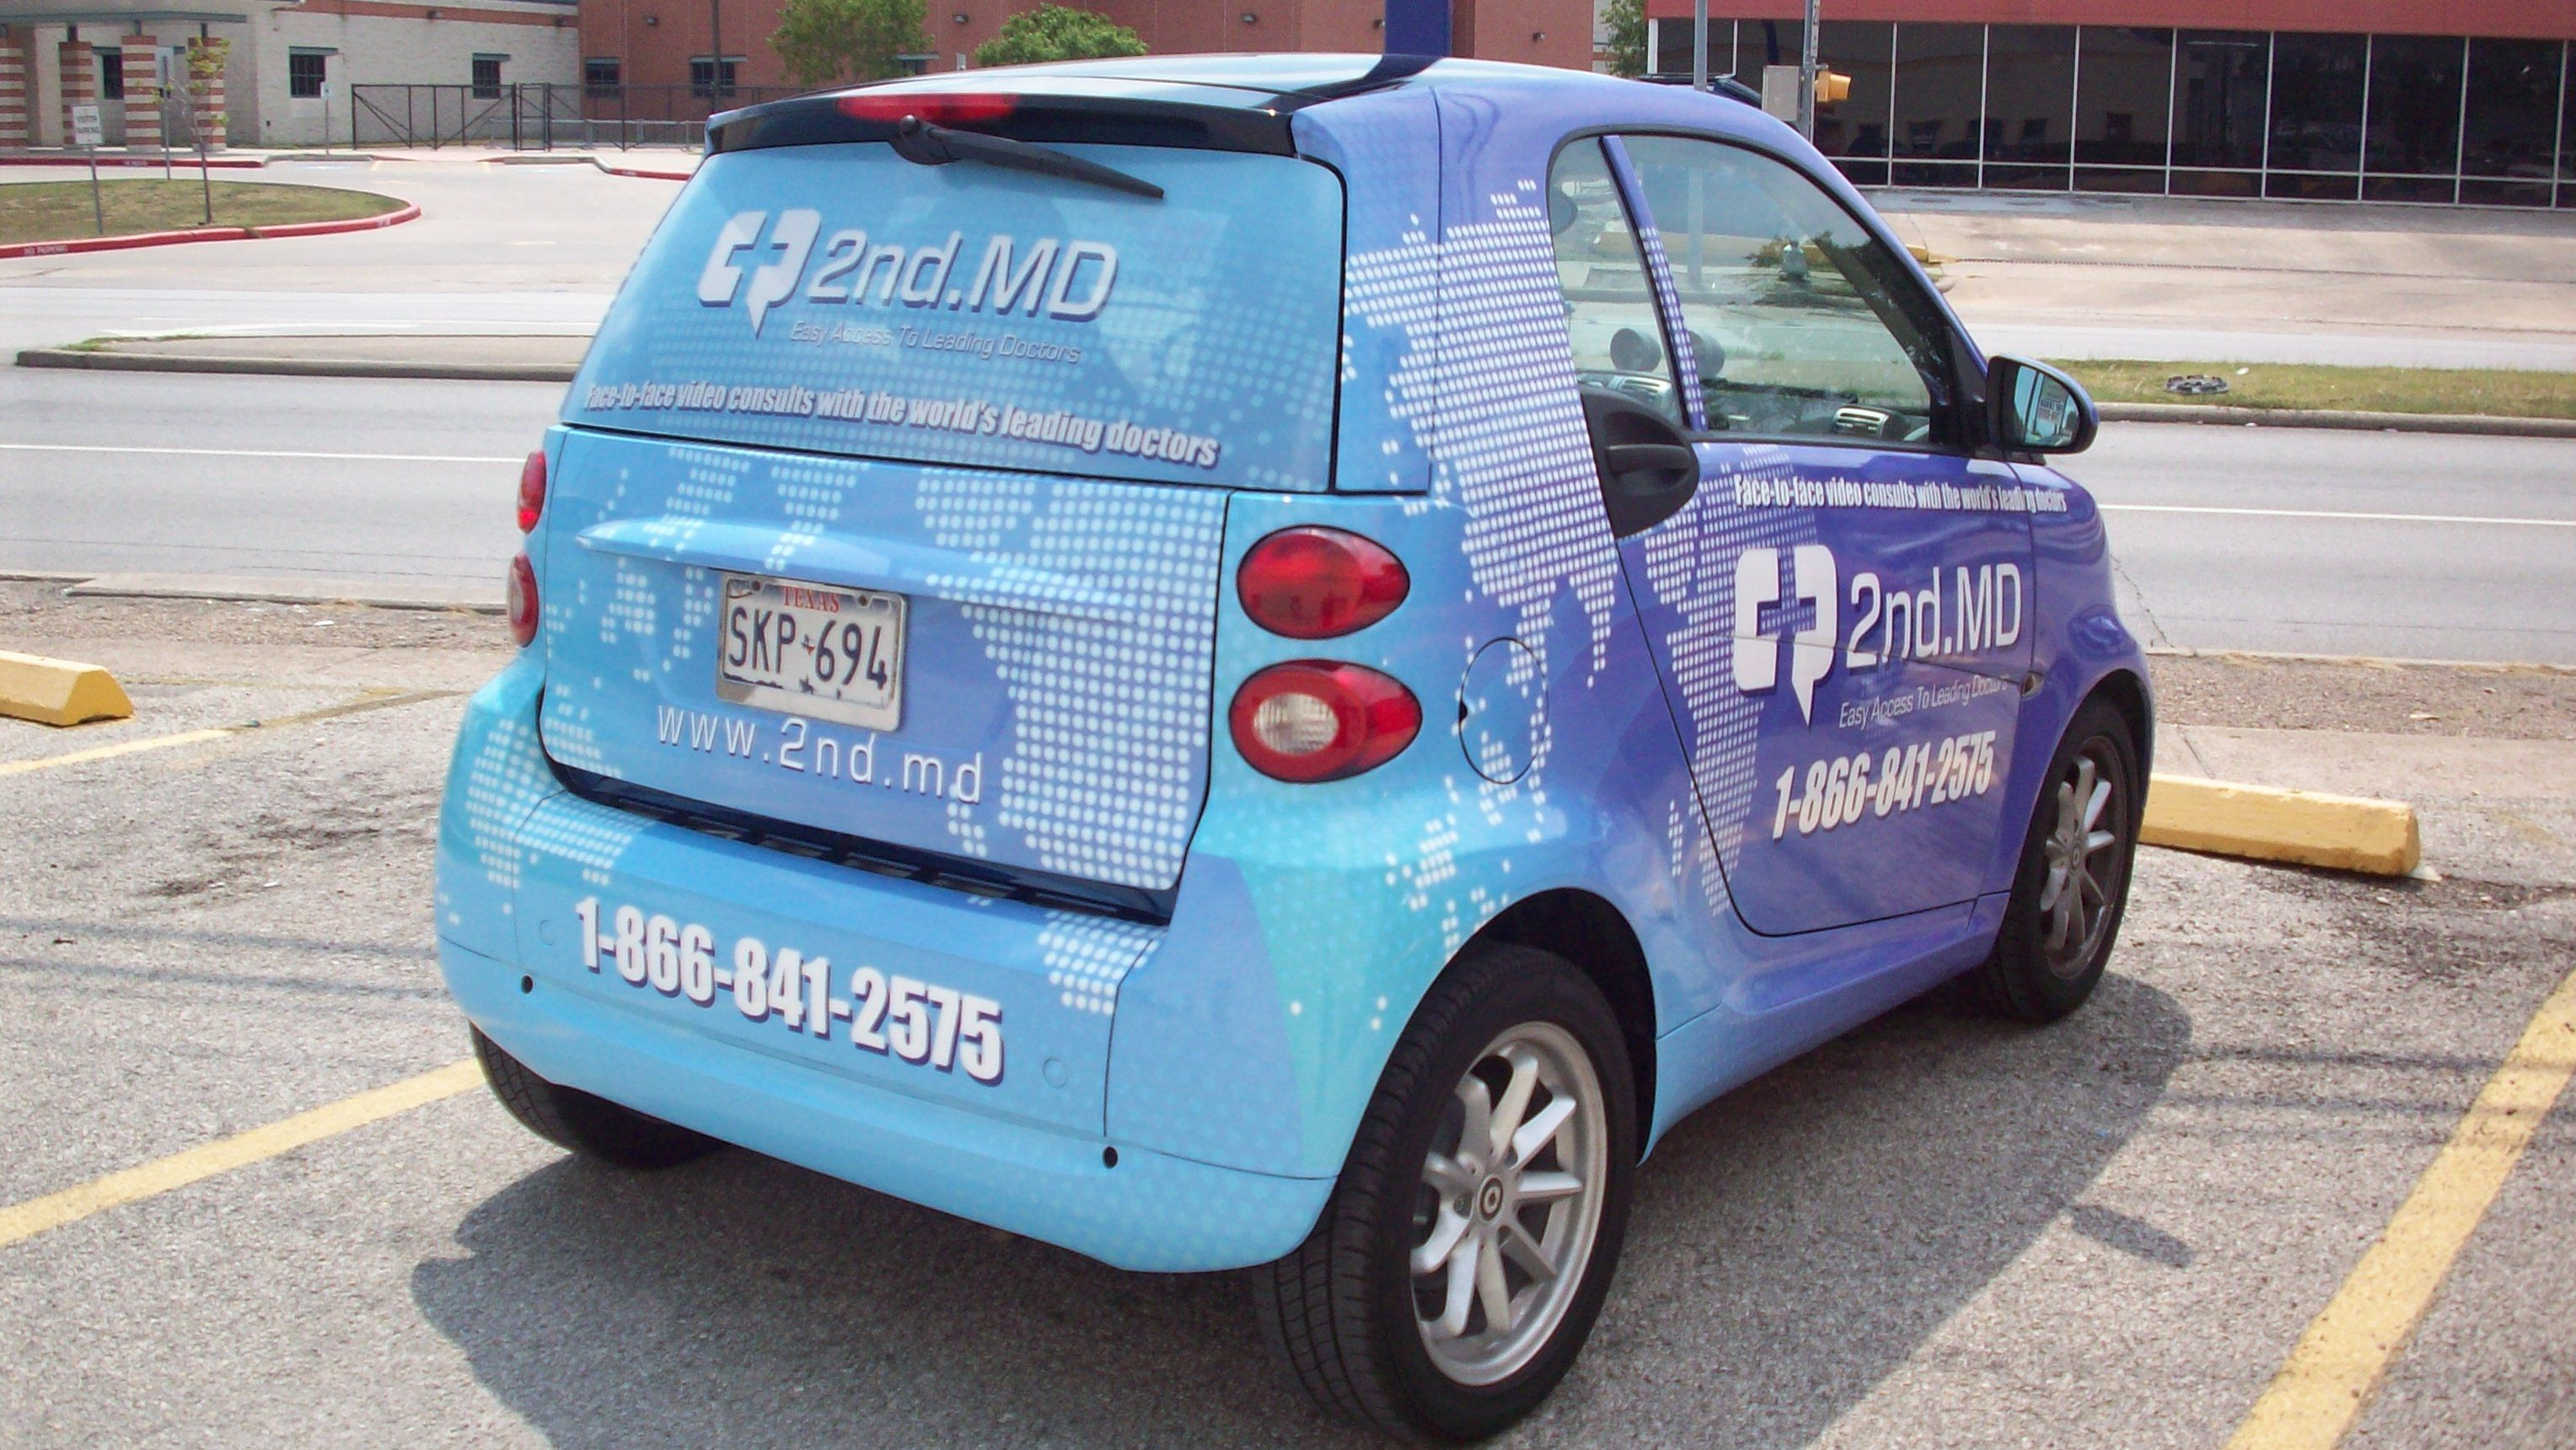 Smart Car wrap for 2nd MD